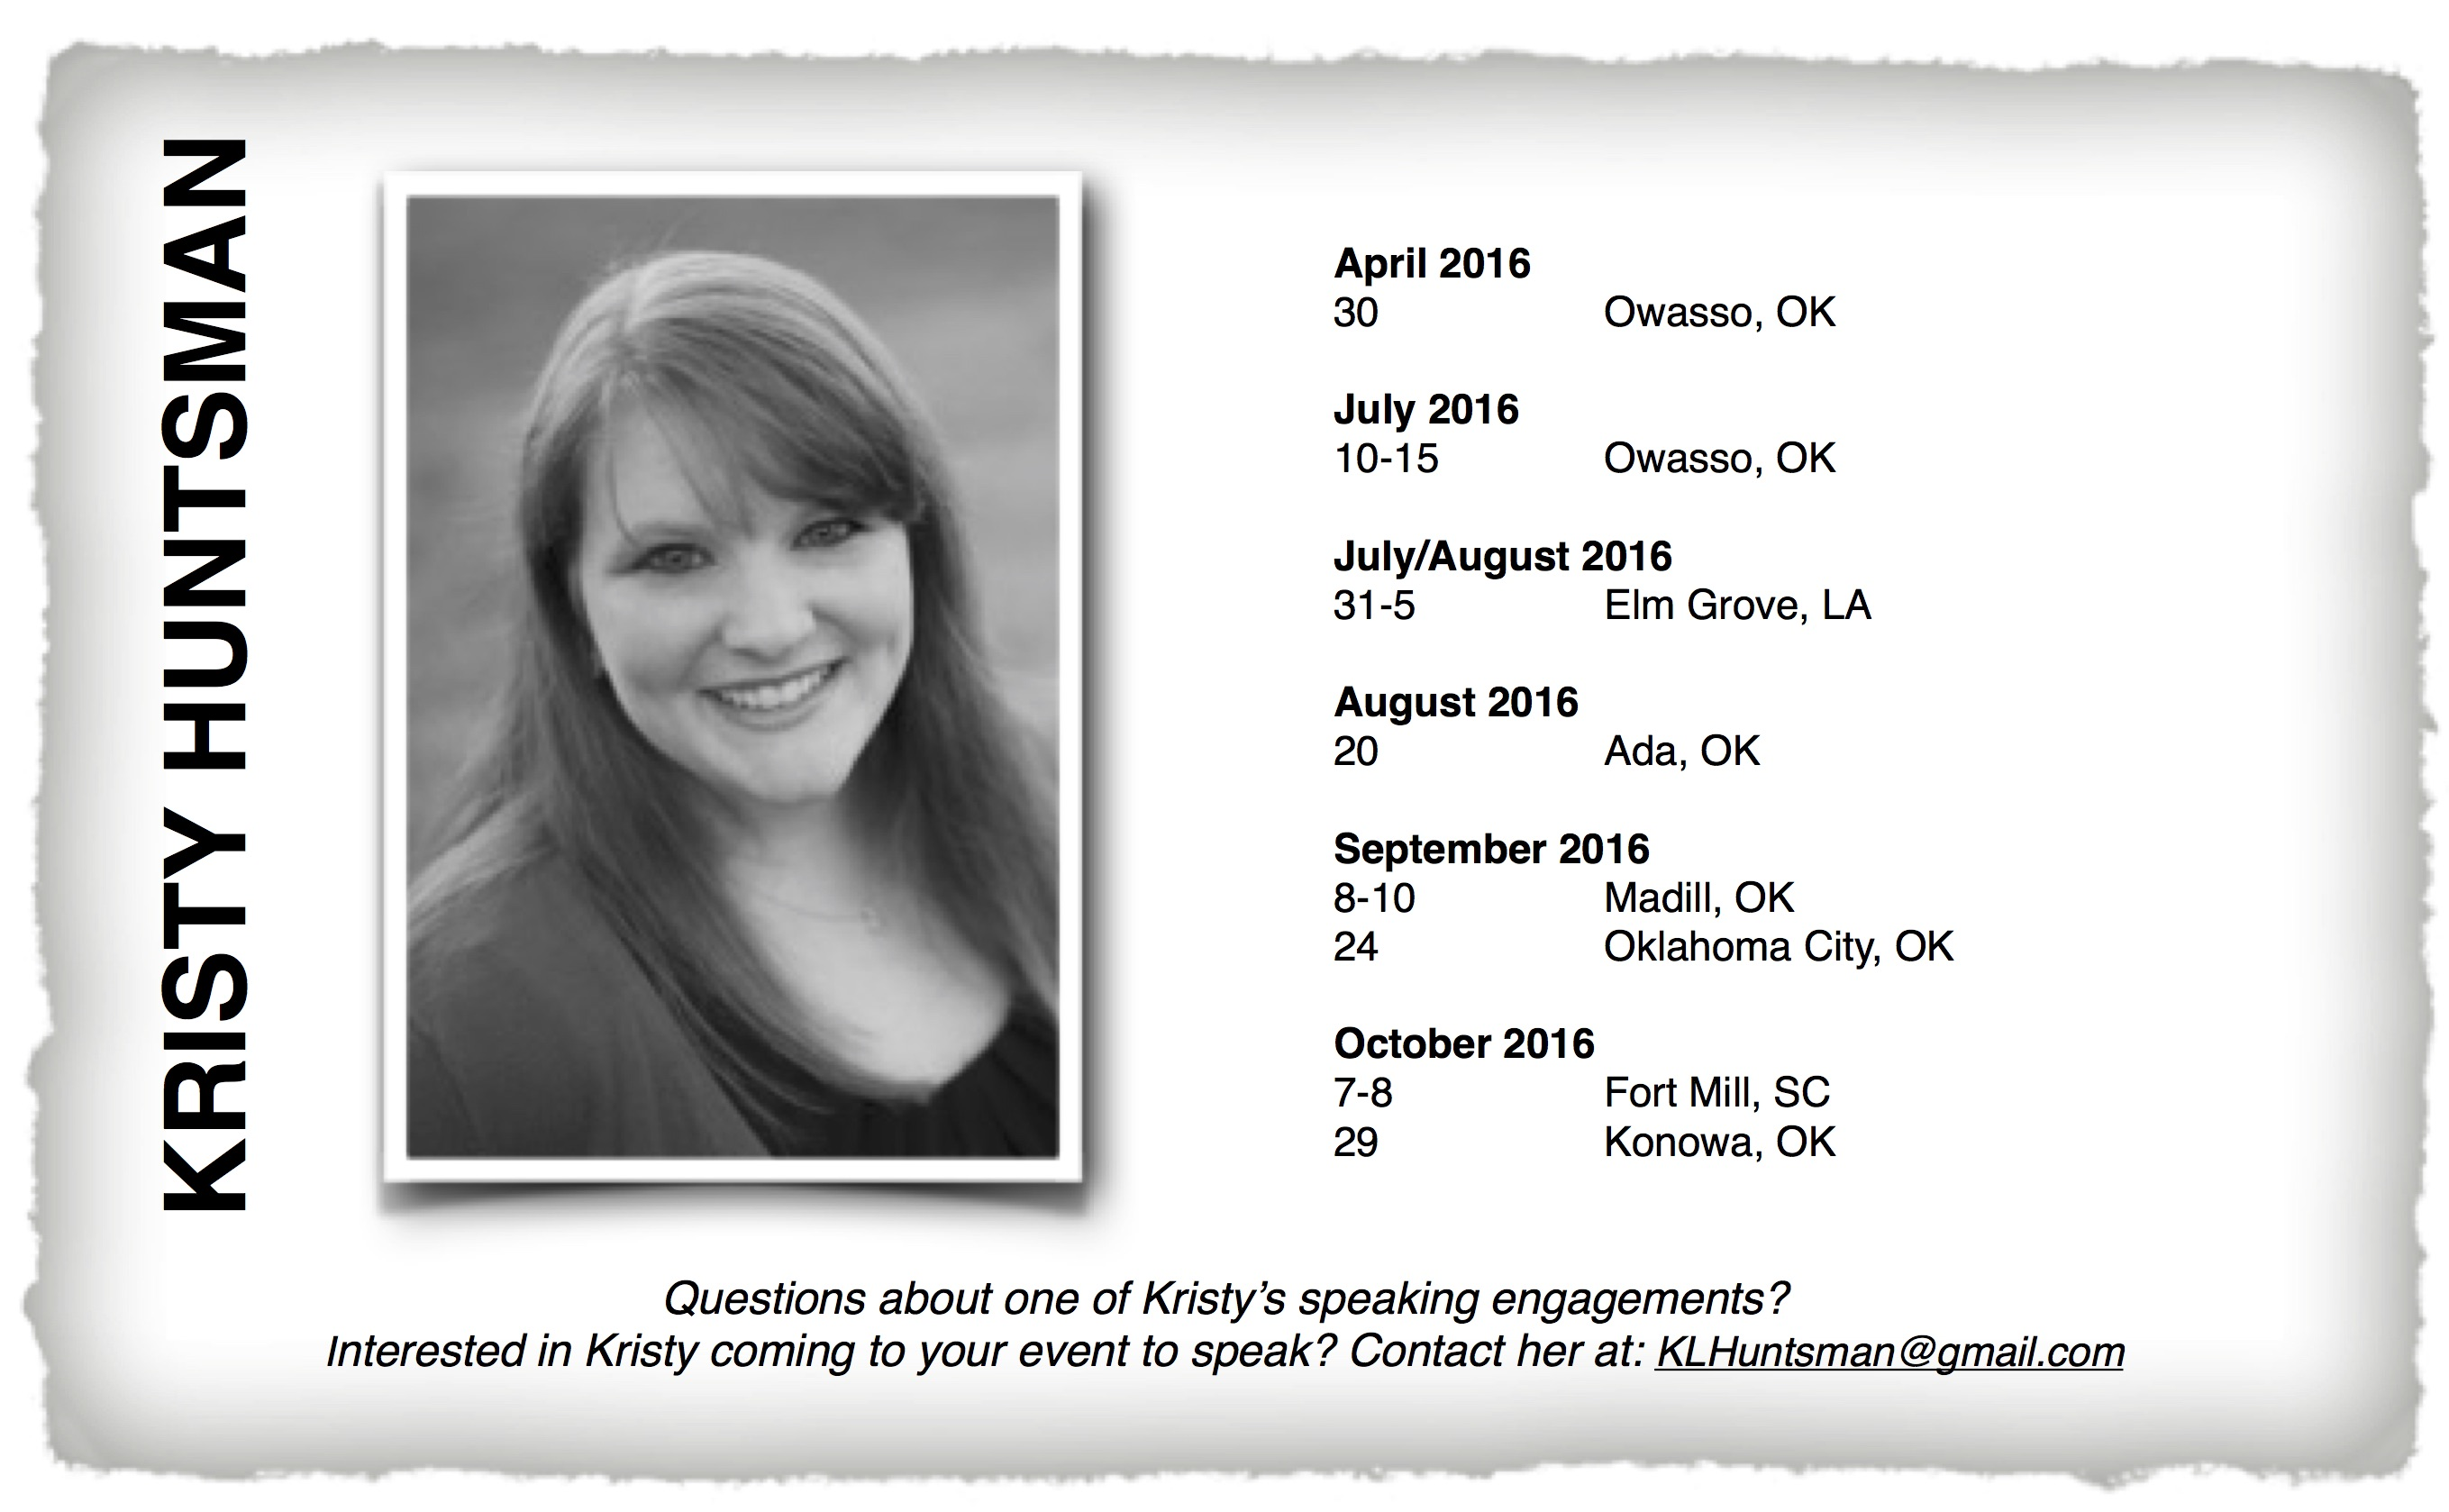 kaio-publications-speaking-schedule-for-kristy-huntsman.jpg